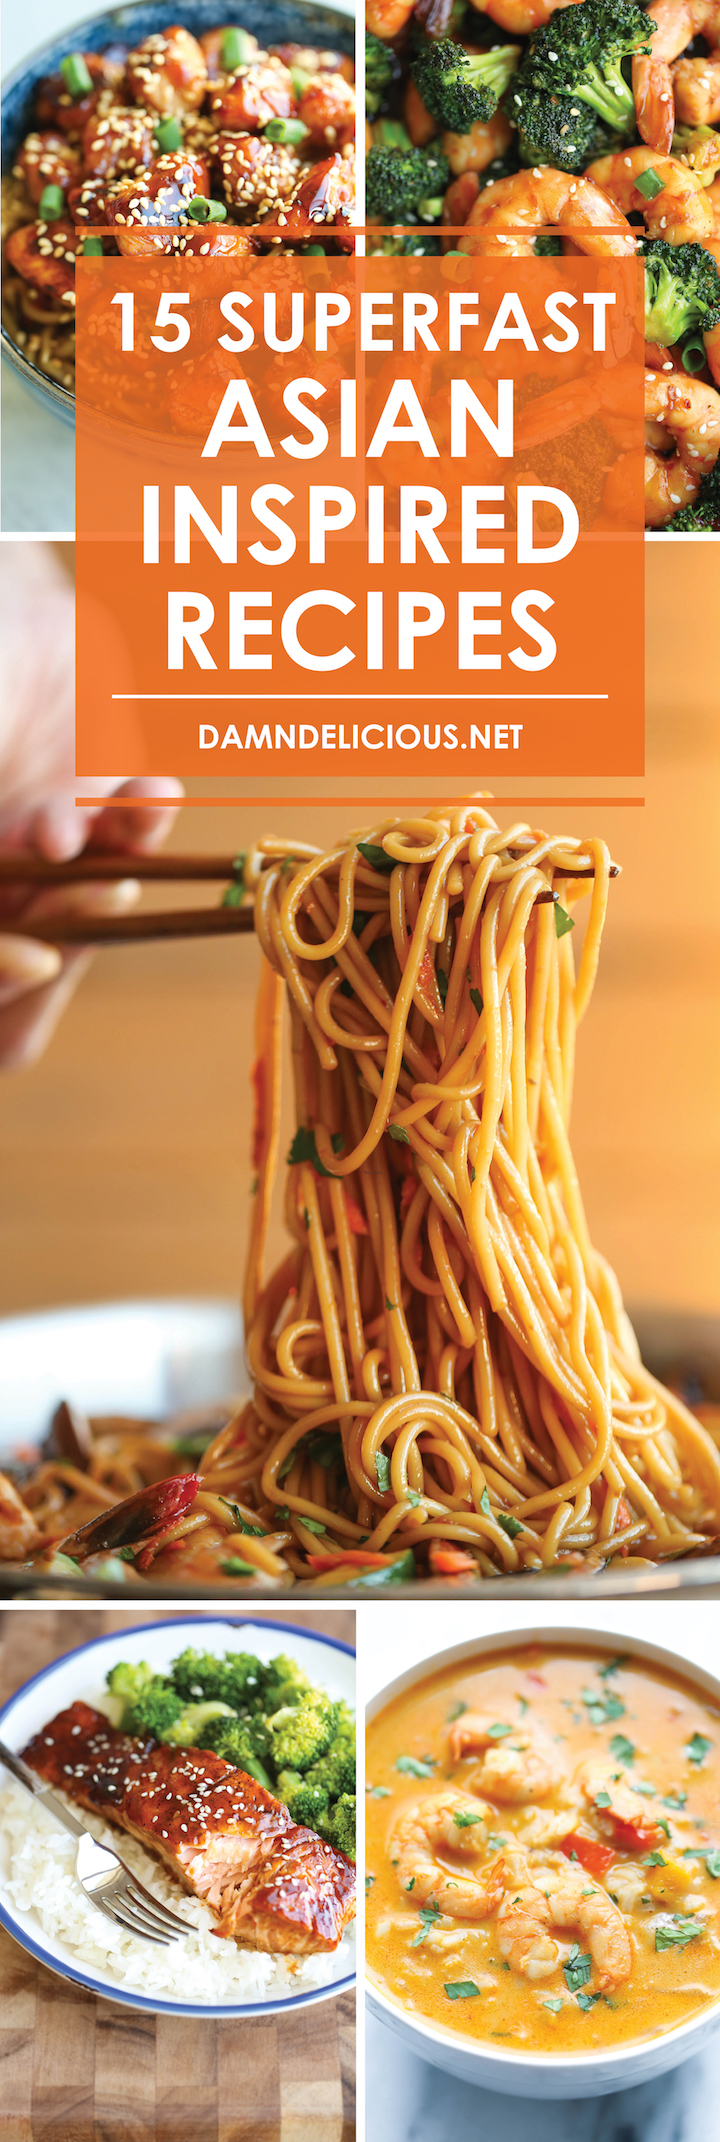 15 Superfast Asian Inspired Recipes Damn Delicious